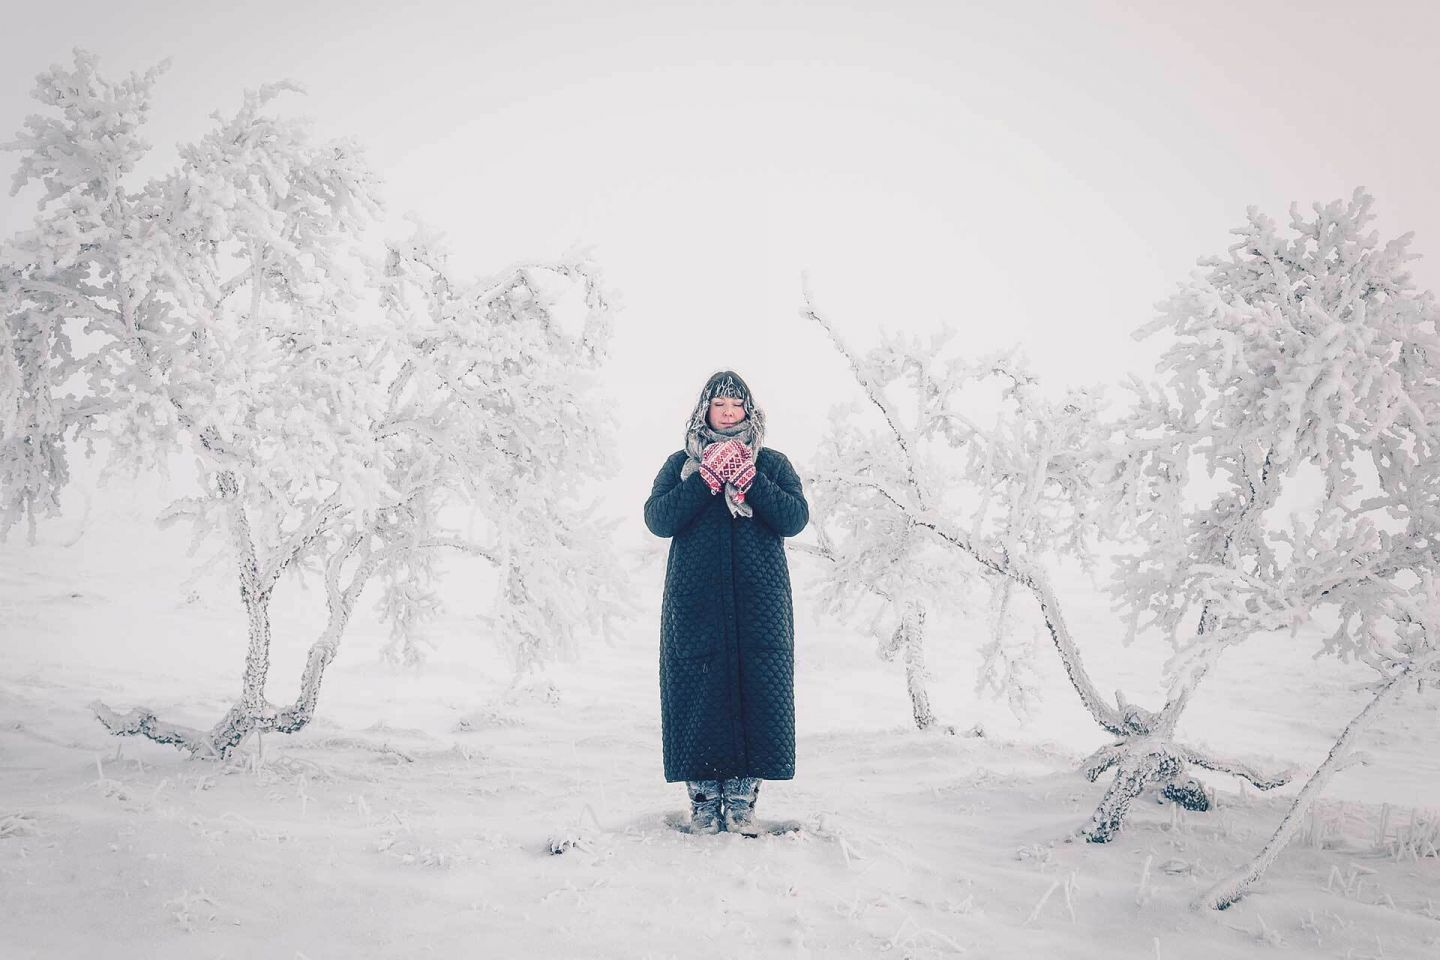 Woman in a snowy forest